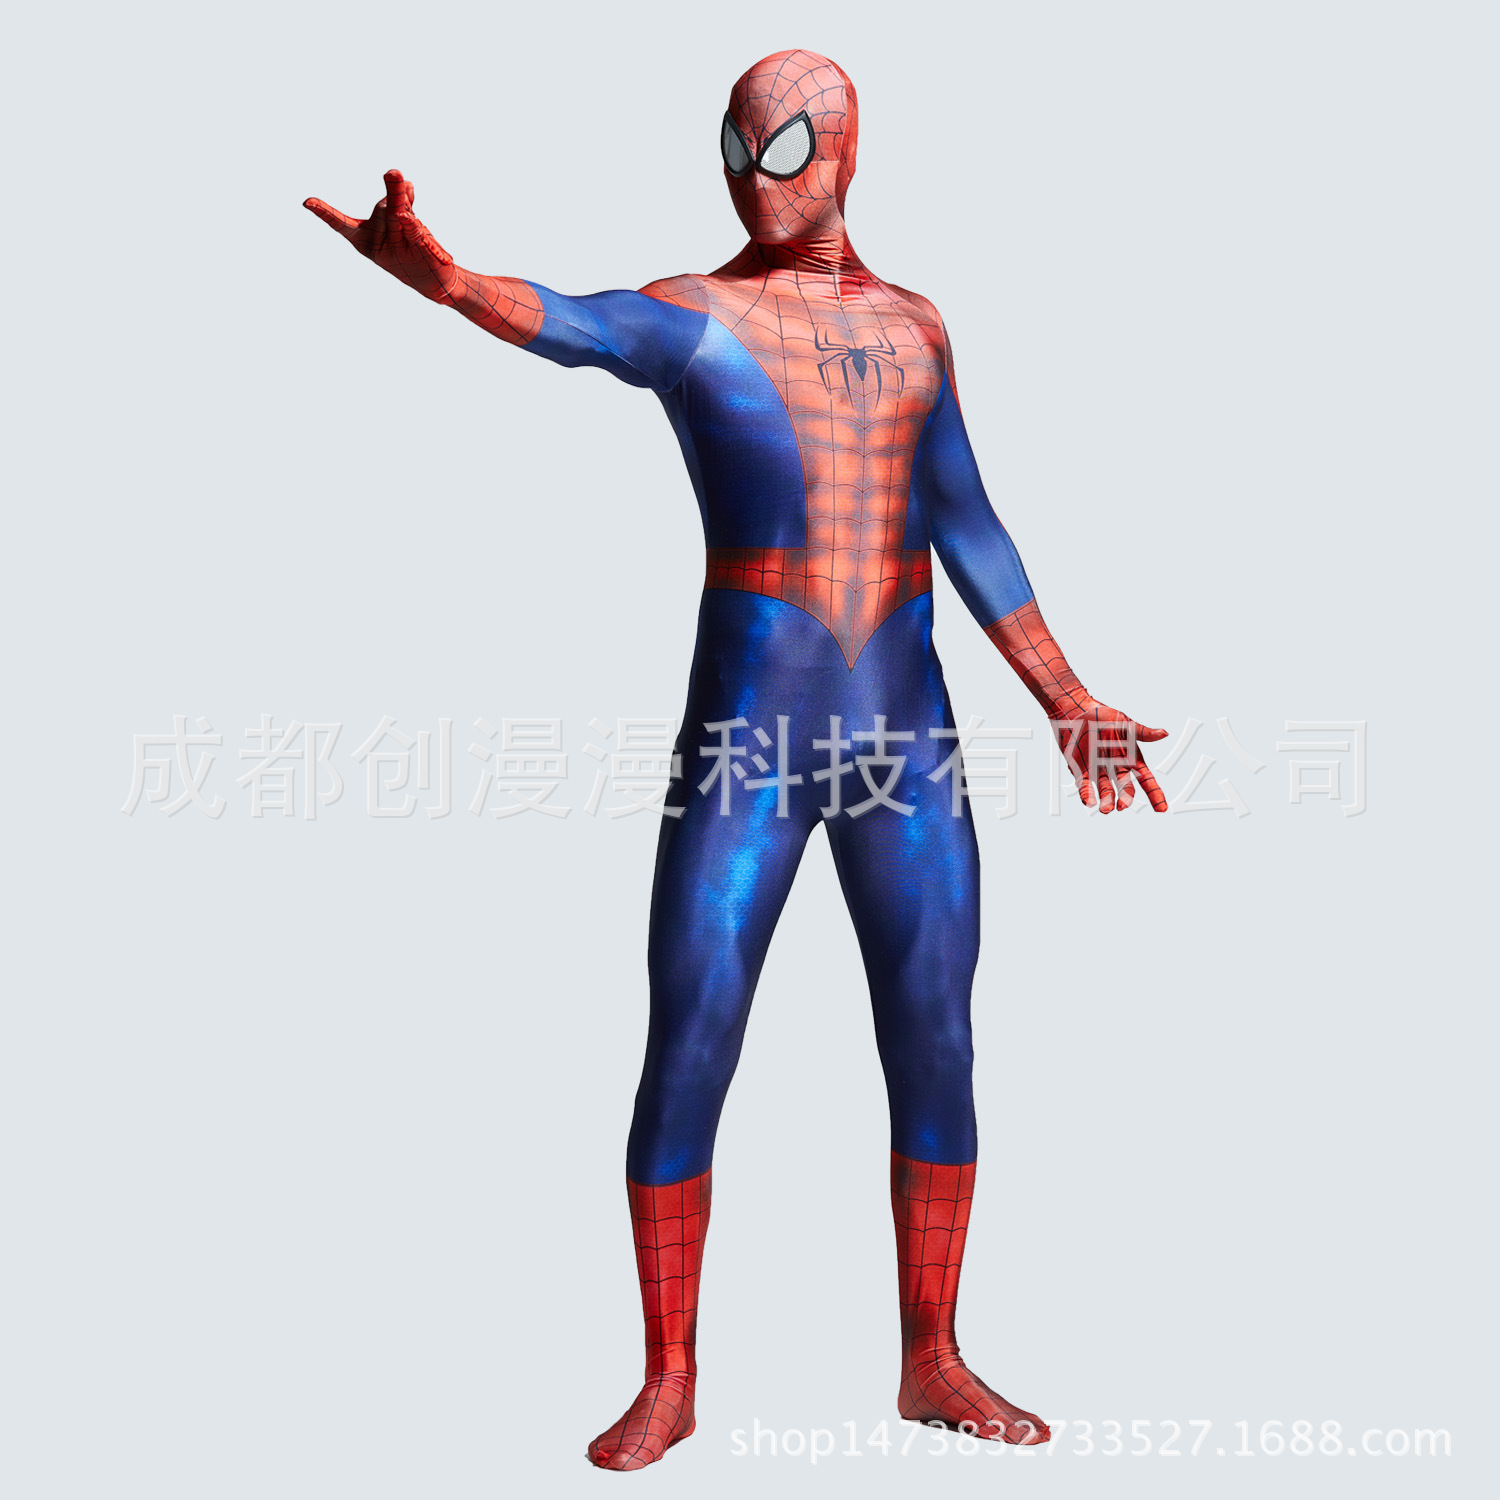 Hero Man jumpsuits Adult Spider-Man Costume Peter Parker Hero Bodysuit Comic Con Spider Man Jumpsuit Party Fancy Dress